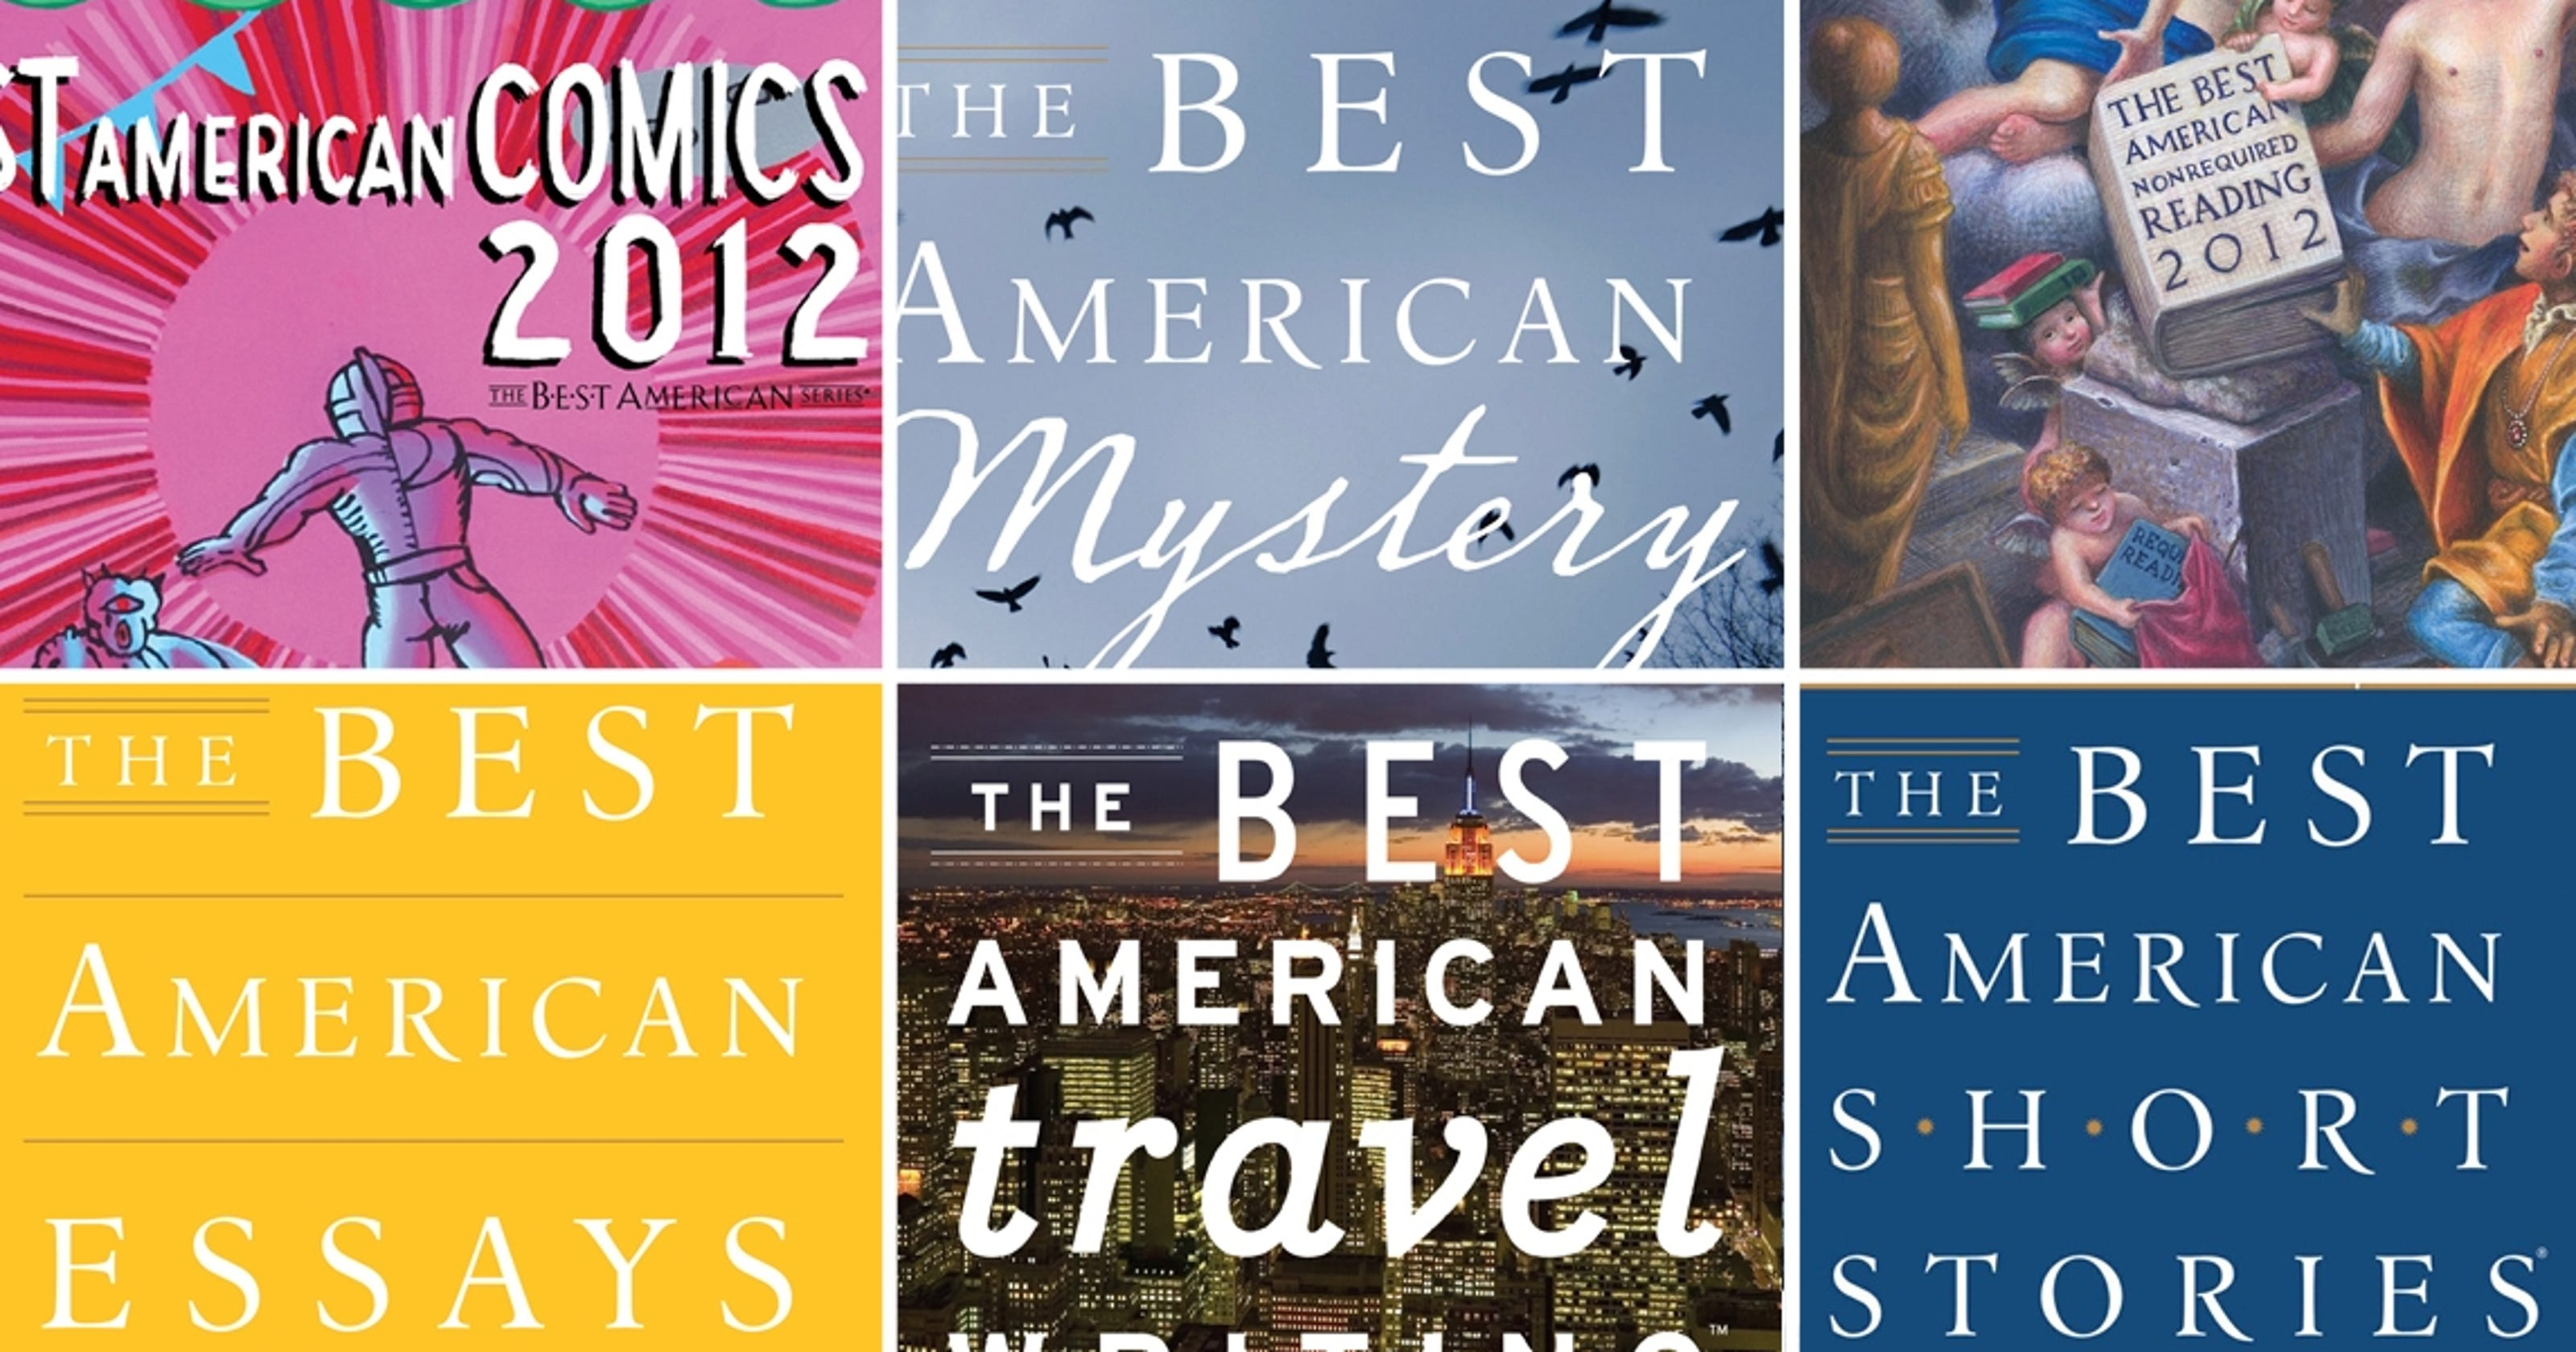 the best american essays 2012 summary The best american essays summary this collection of essays contains a selection of writing from a number of distinguished, contemporary american writers the topics range greatly, but generally cluster around three broad categories.